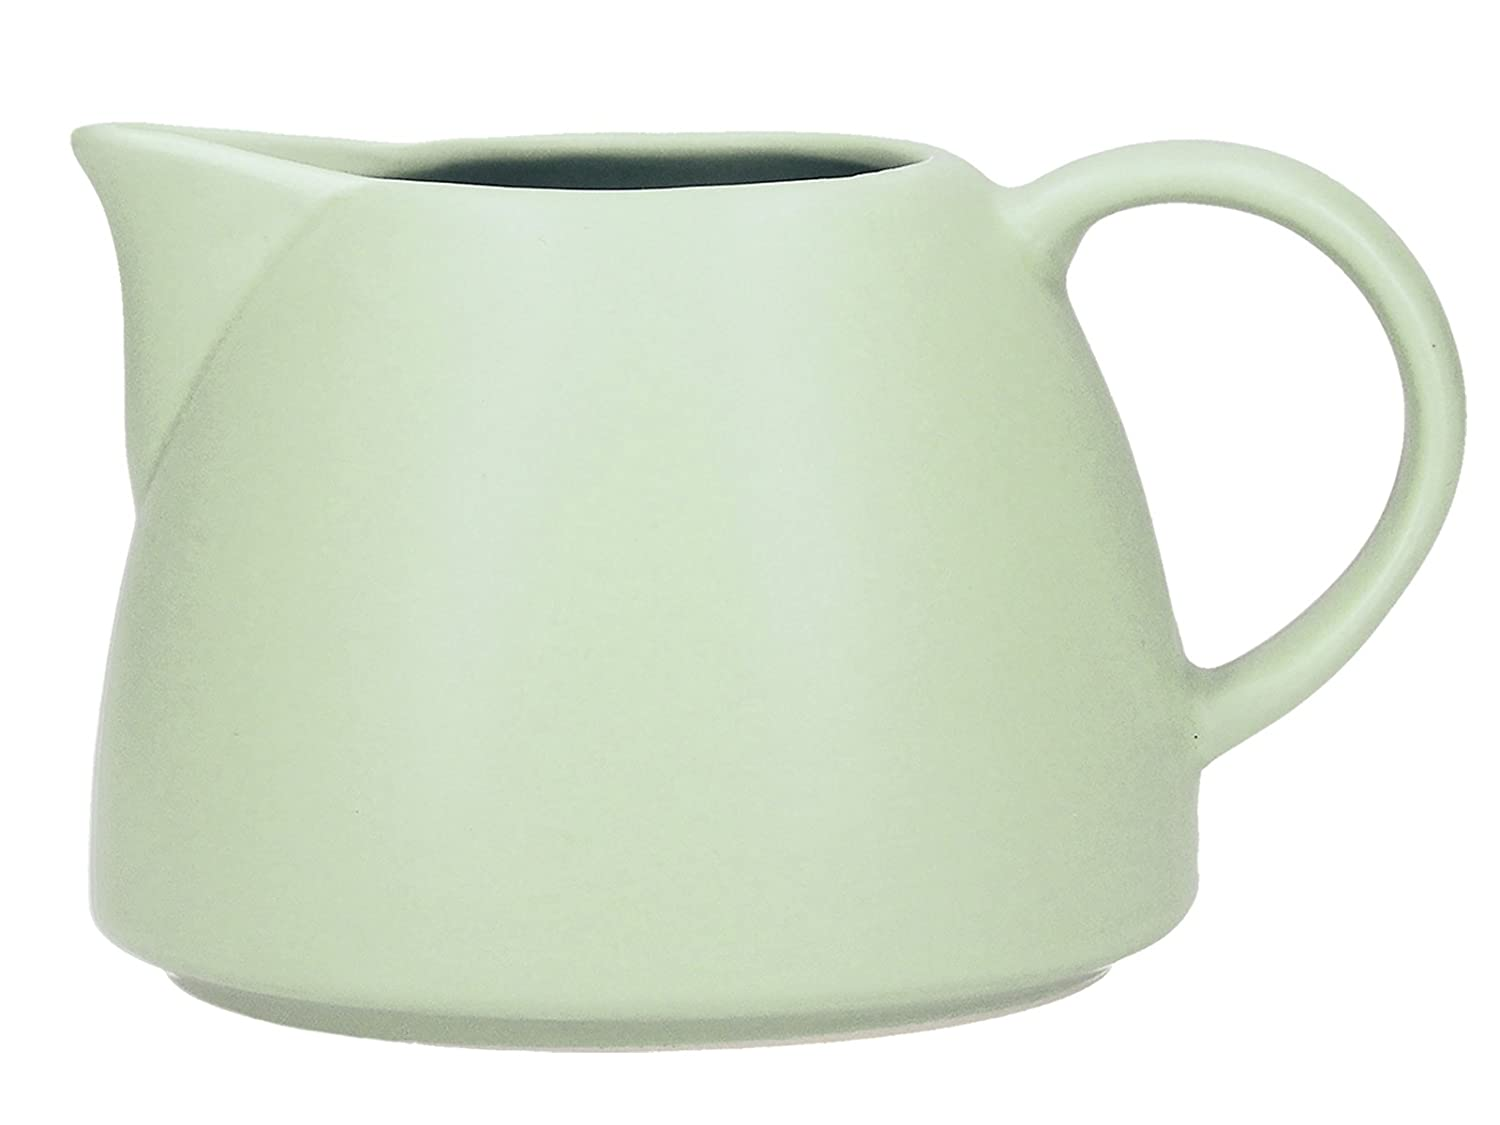 La Cafetière Barcelona Collection 380ml / 13.4 fl oz Ceramic Milk Jug – Pistachio Green La Cafetiere (UK) Limited 5212150